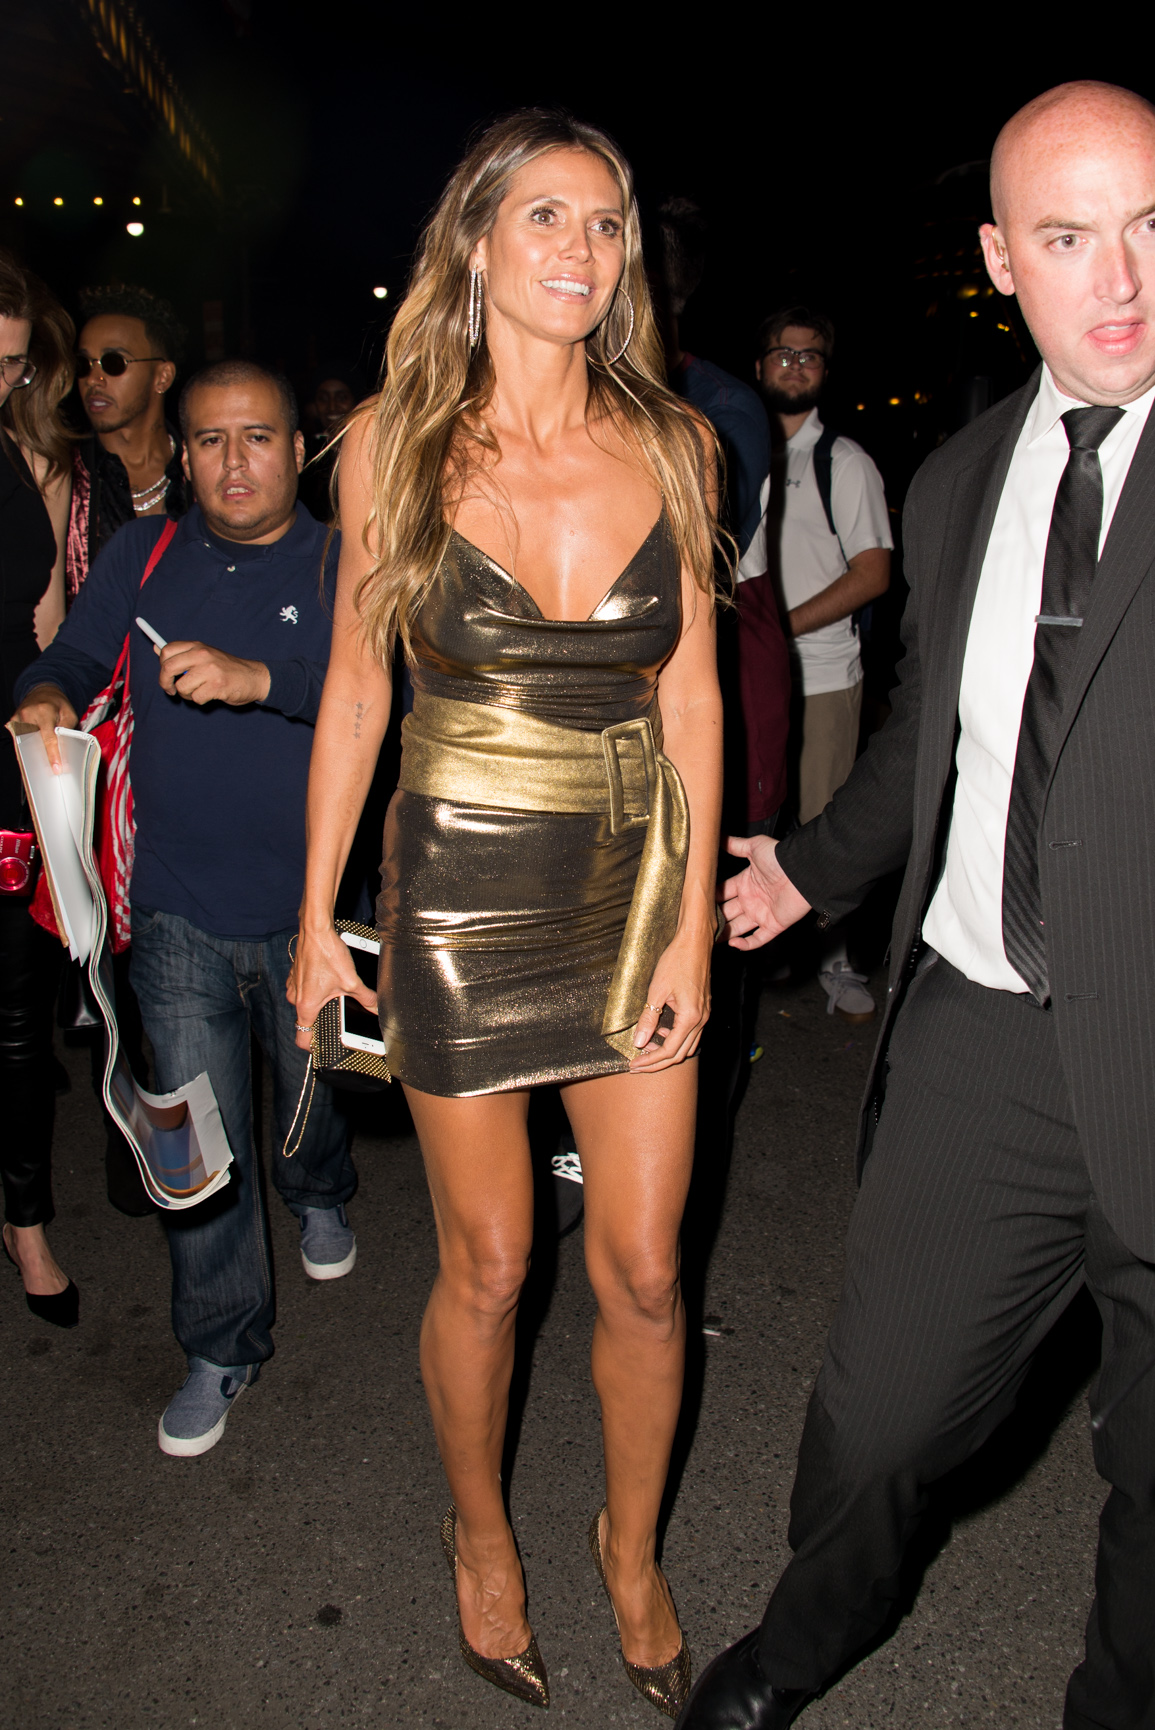 Stars spotted leaving the Harper's Bazaar Icons Party in New York City, New York. <P> Pictured: Heidi Klum <B>Ref: SPL1572912  080917  </B><BR/> Picture by: Matt Brandt / Splash News<BR/> </P><P> <B>Splash News and Pictures</B><BR/> Los Angeles:310-821-2666<BR/> New York:212-619-2666<BR/> London:870-934-2666<BR/> <span id=